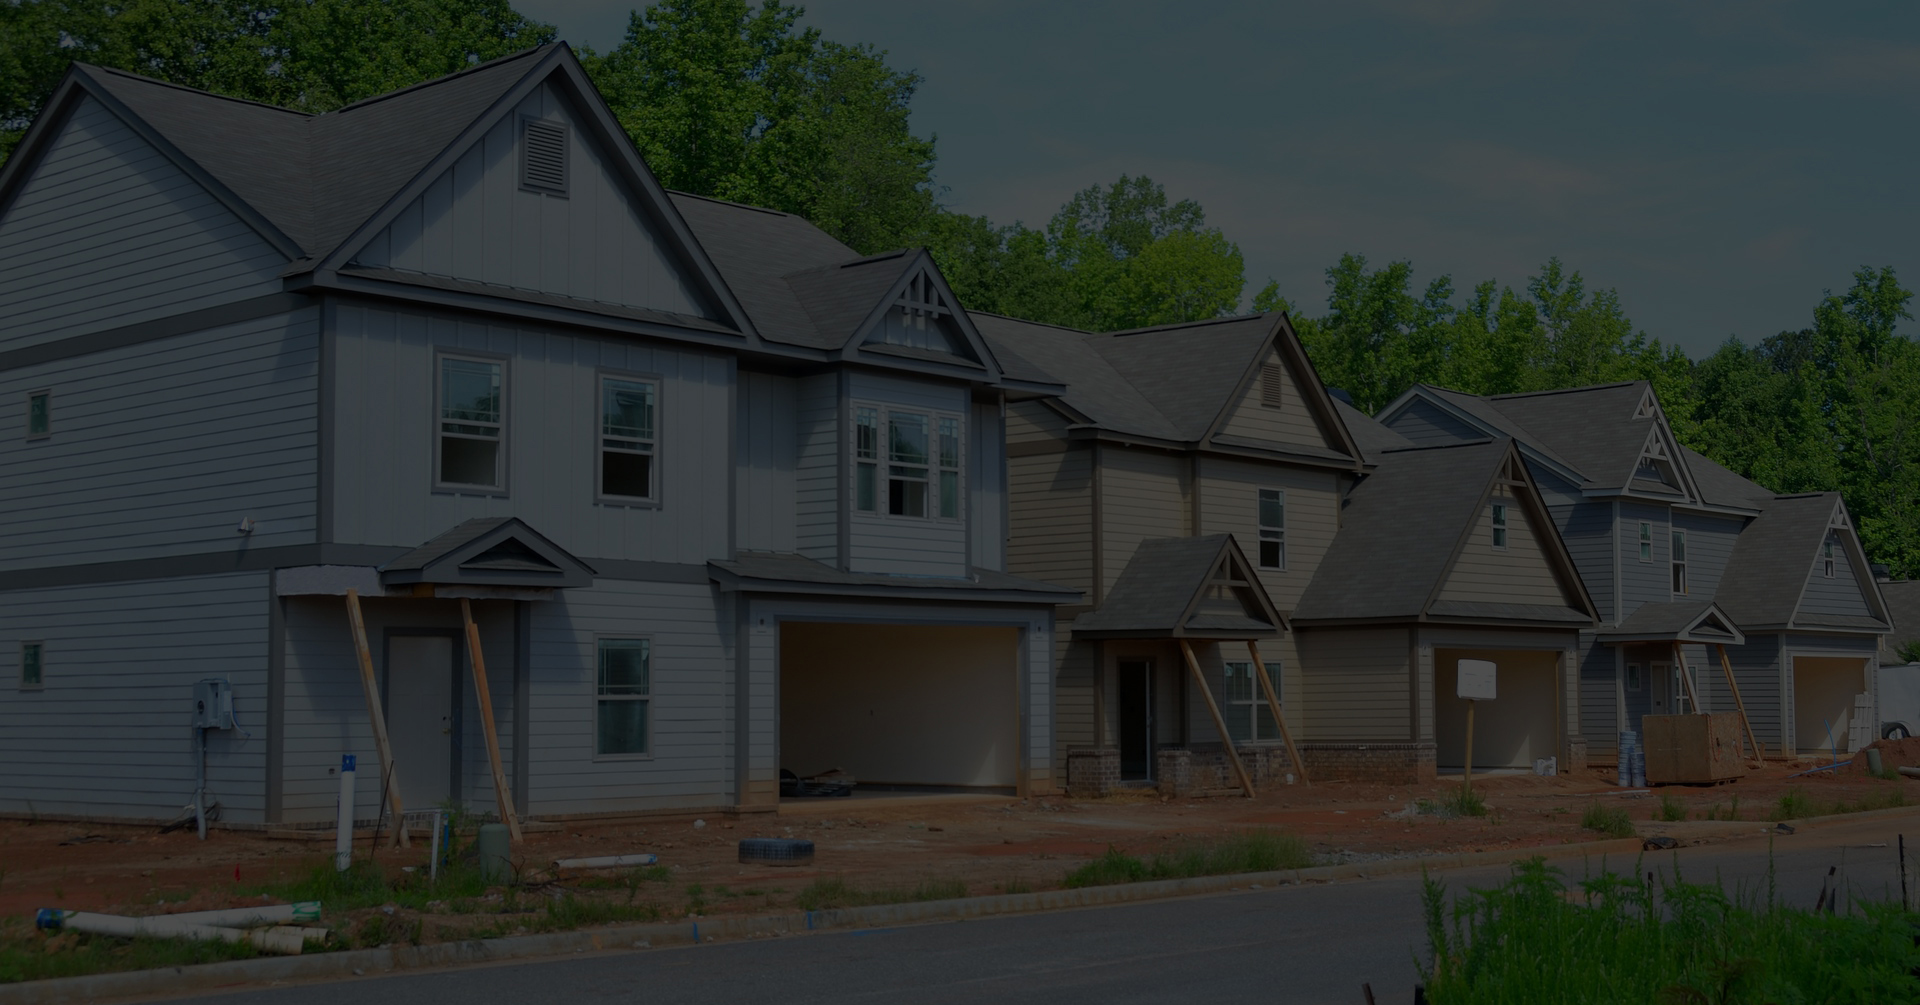 The Ins and Outs of Homeowners Associations